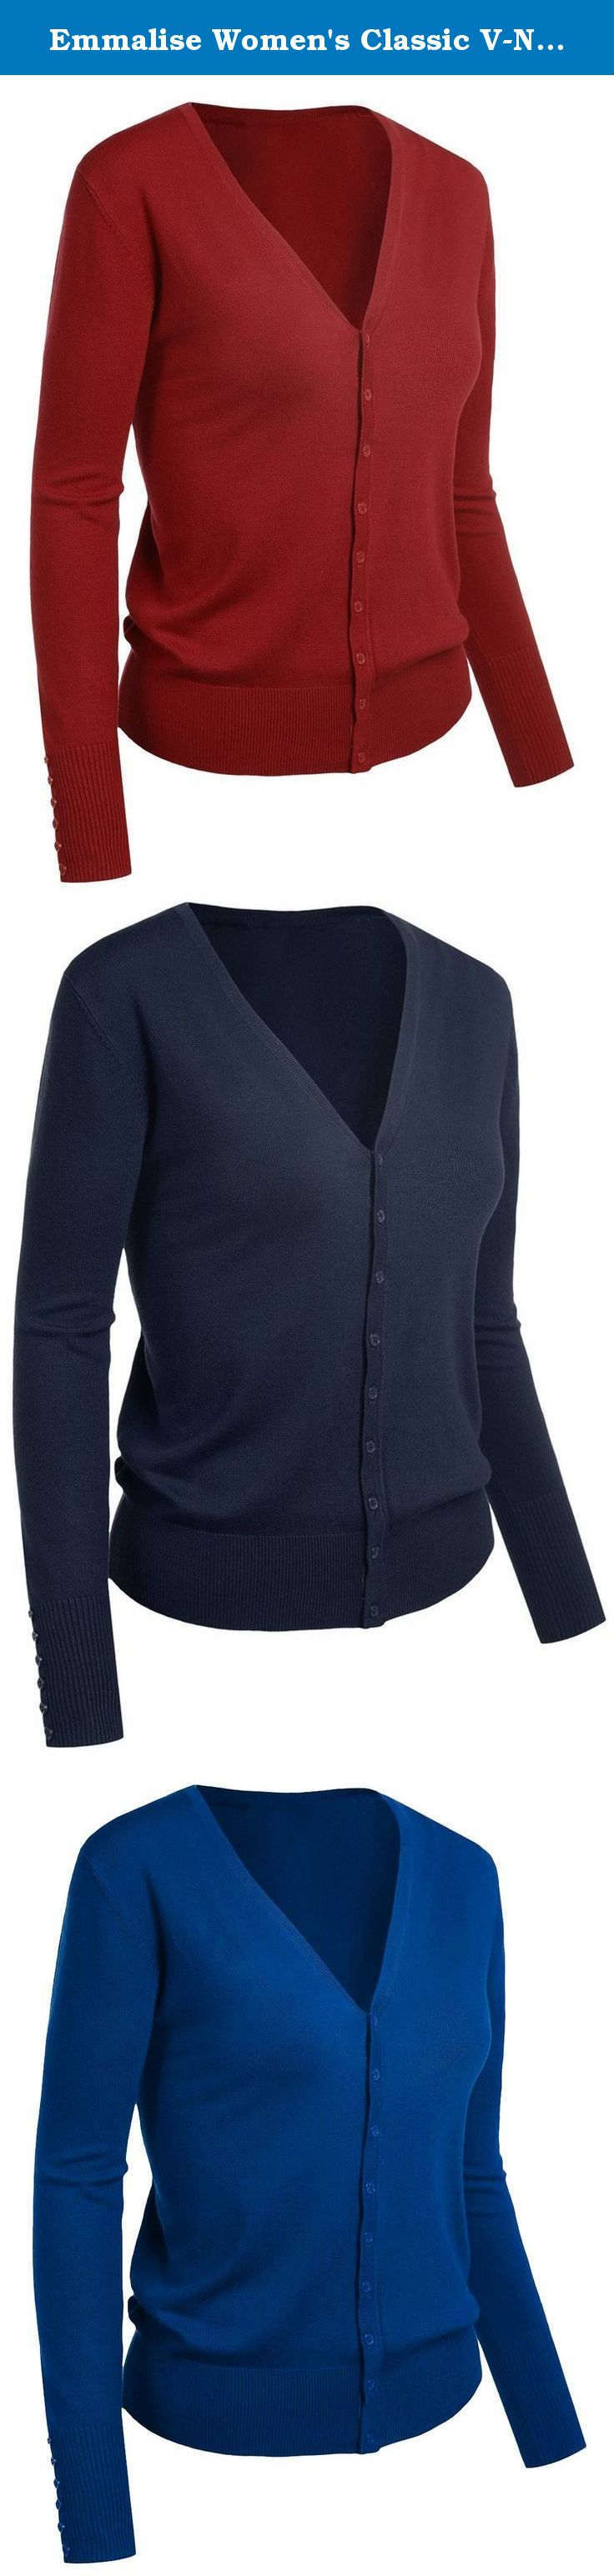 Emmalise Women's Classic V-Neck Button Down Cardigan Sweater Small to XL. Great basic sweater cardigan top for work or any occasion. Great looking, comfortable and soft. Perfect for work or for any professional working environment. Emmalise is a progressive active basic apparel line designed in Los Angeles, California. Our focus is to create high quality, comfortable everyday clothing for women, men, children, and infants. Our design collection includes high quality every day long and…